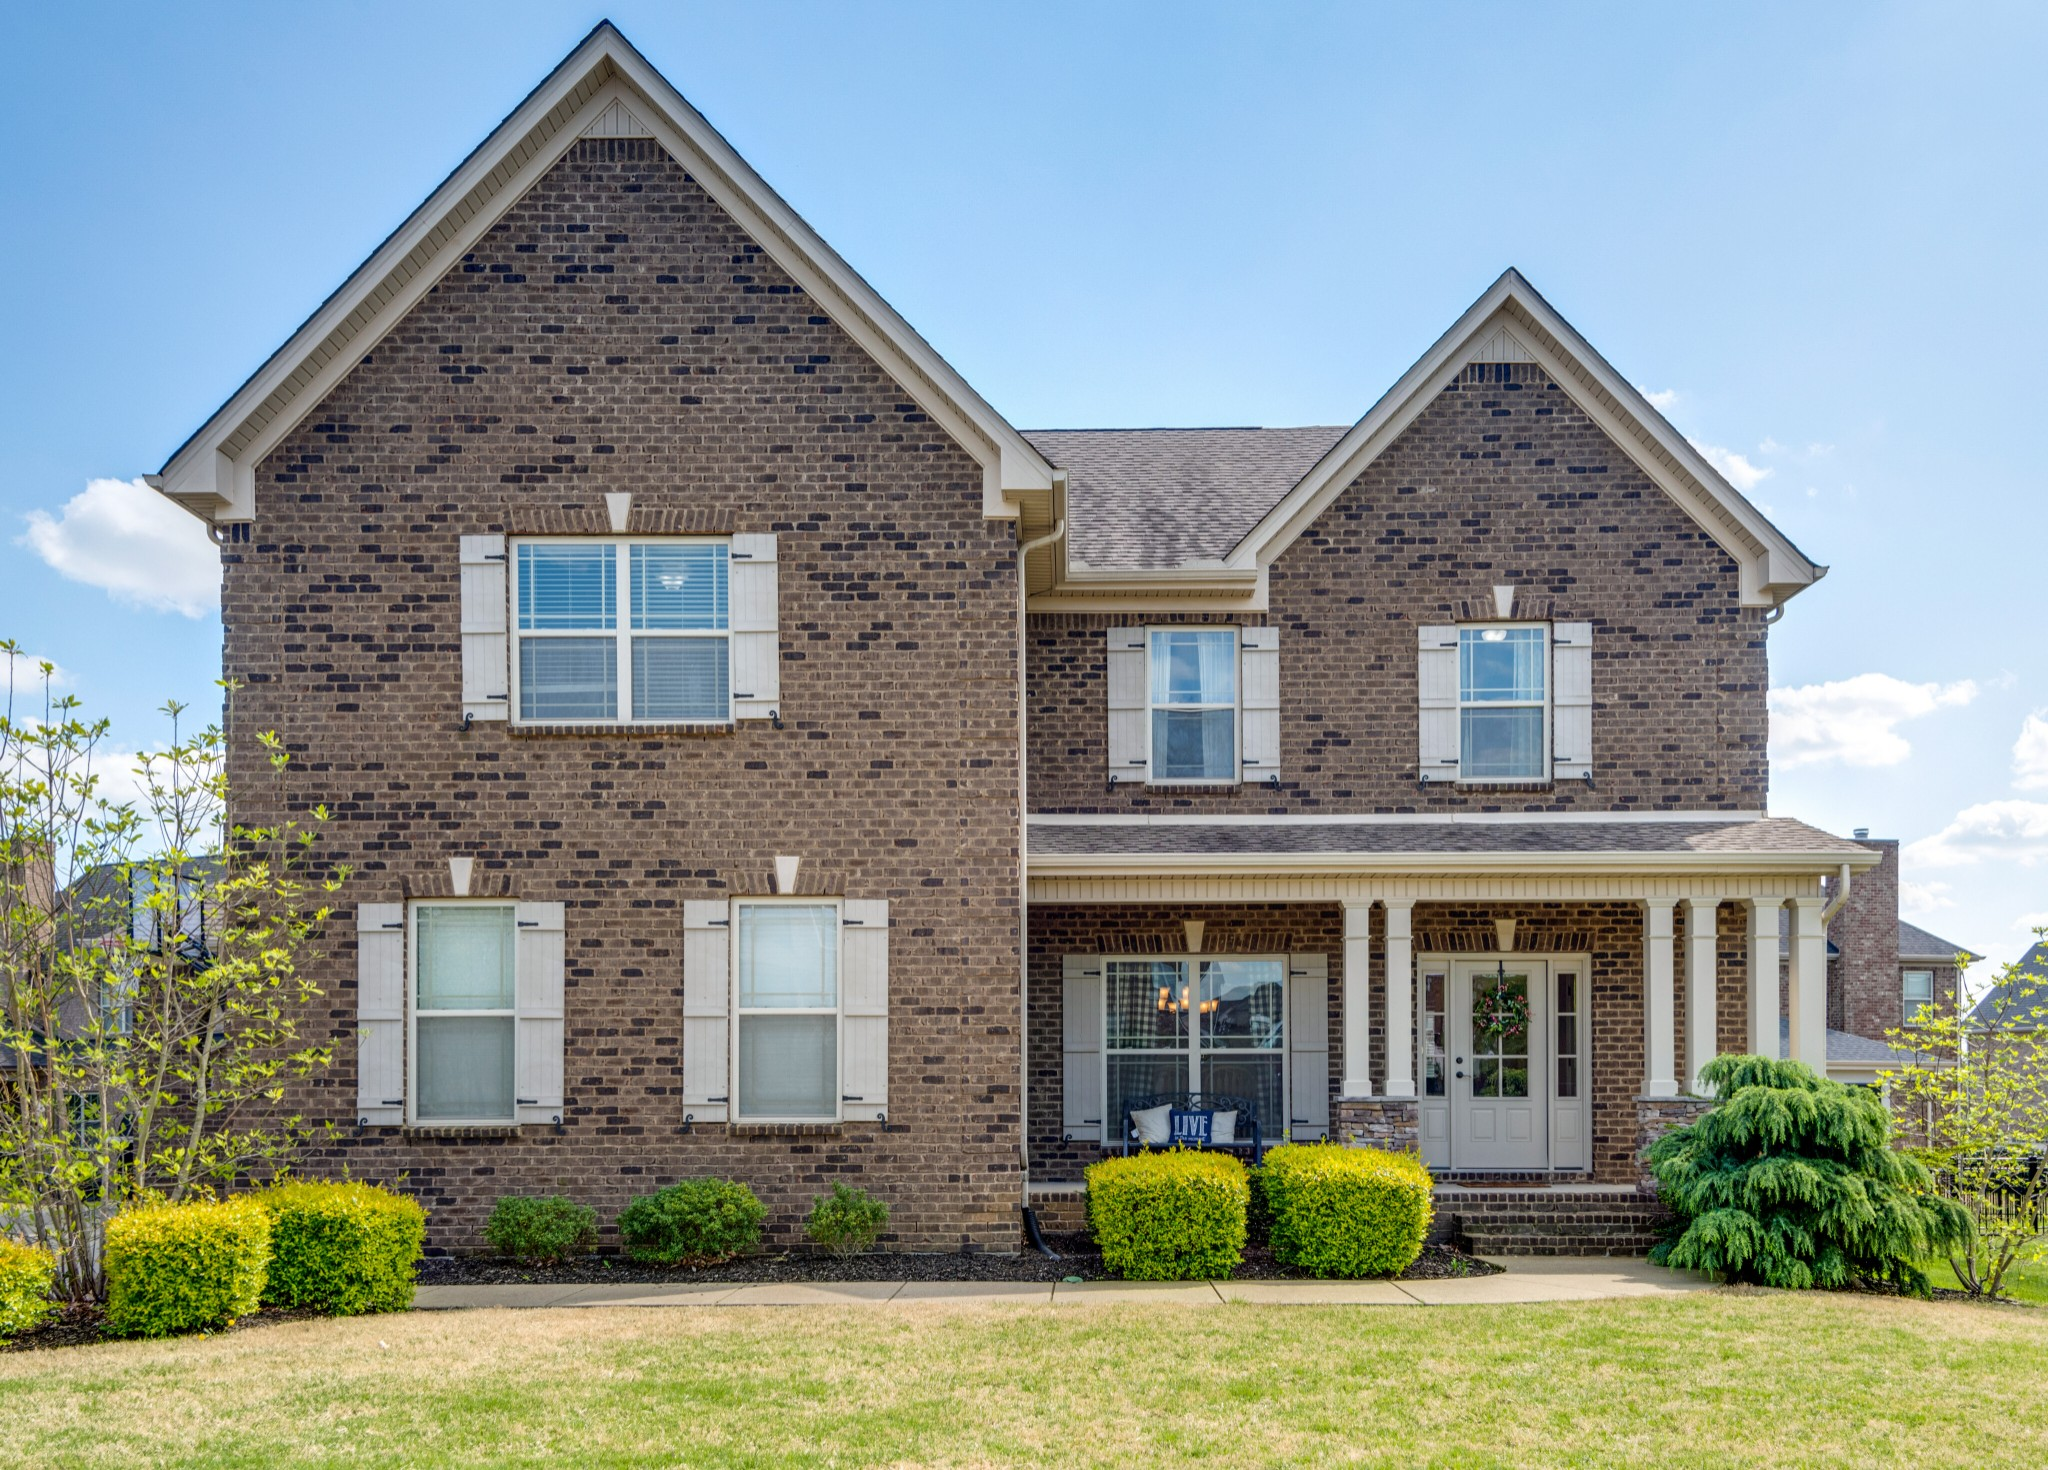 Welcome Home! Incredible Home on Cul-De-Sac in Benevento East.  Open concept eat in kitchen and formal dining. This home has 4 bedrooms plus a bonus room.  Features cozy covered porch off the kitchen so it is perfect for entertaining!